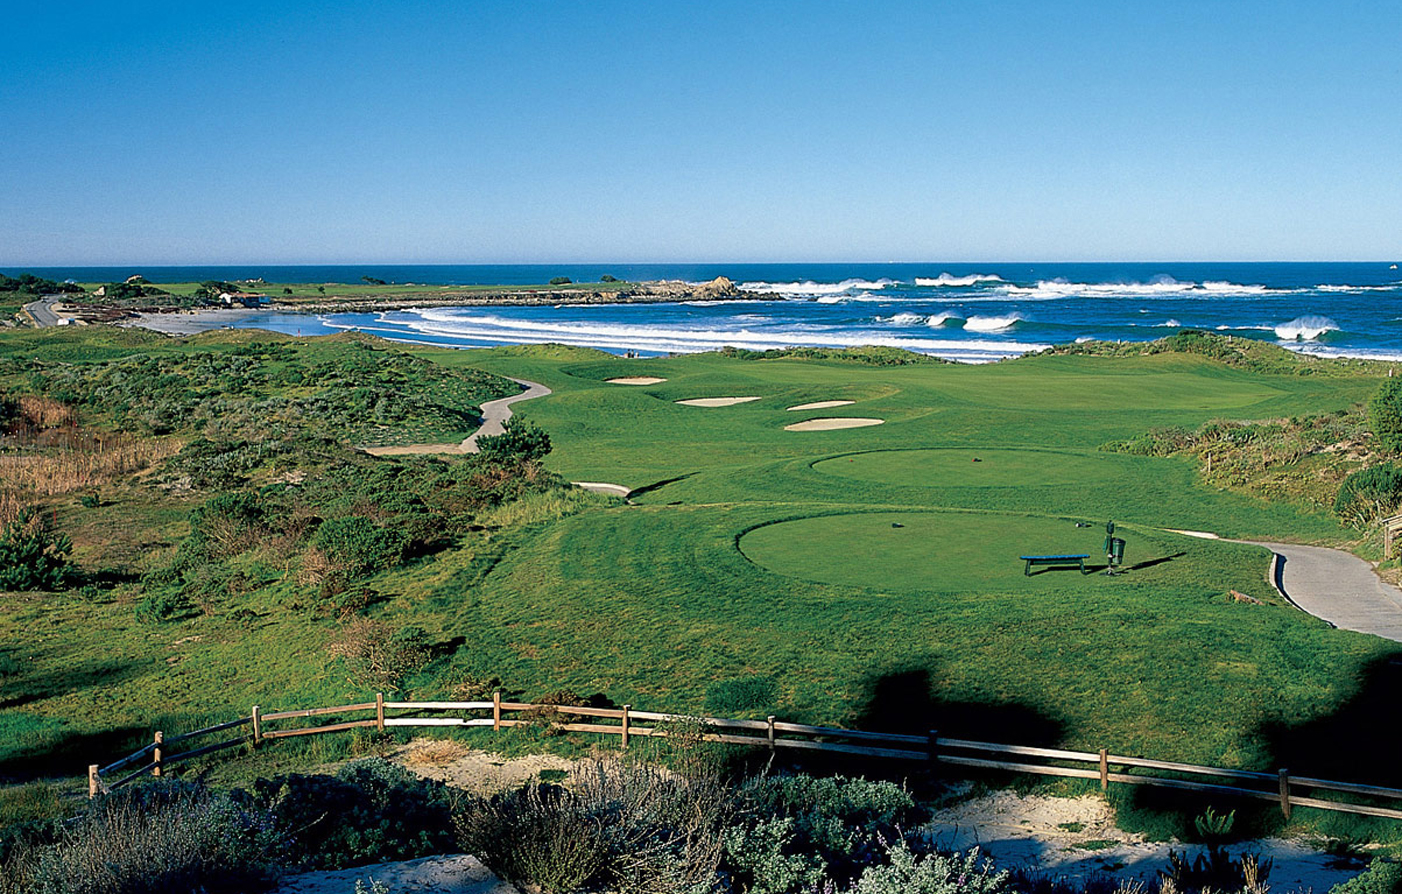 Activities:      The Inn at Spanish Bay - Pebble Beach  in Pebble Beach